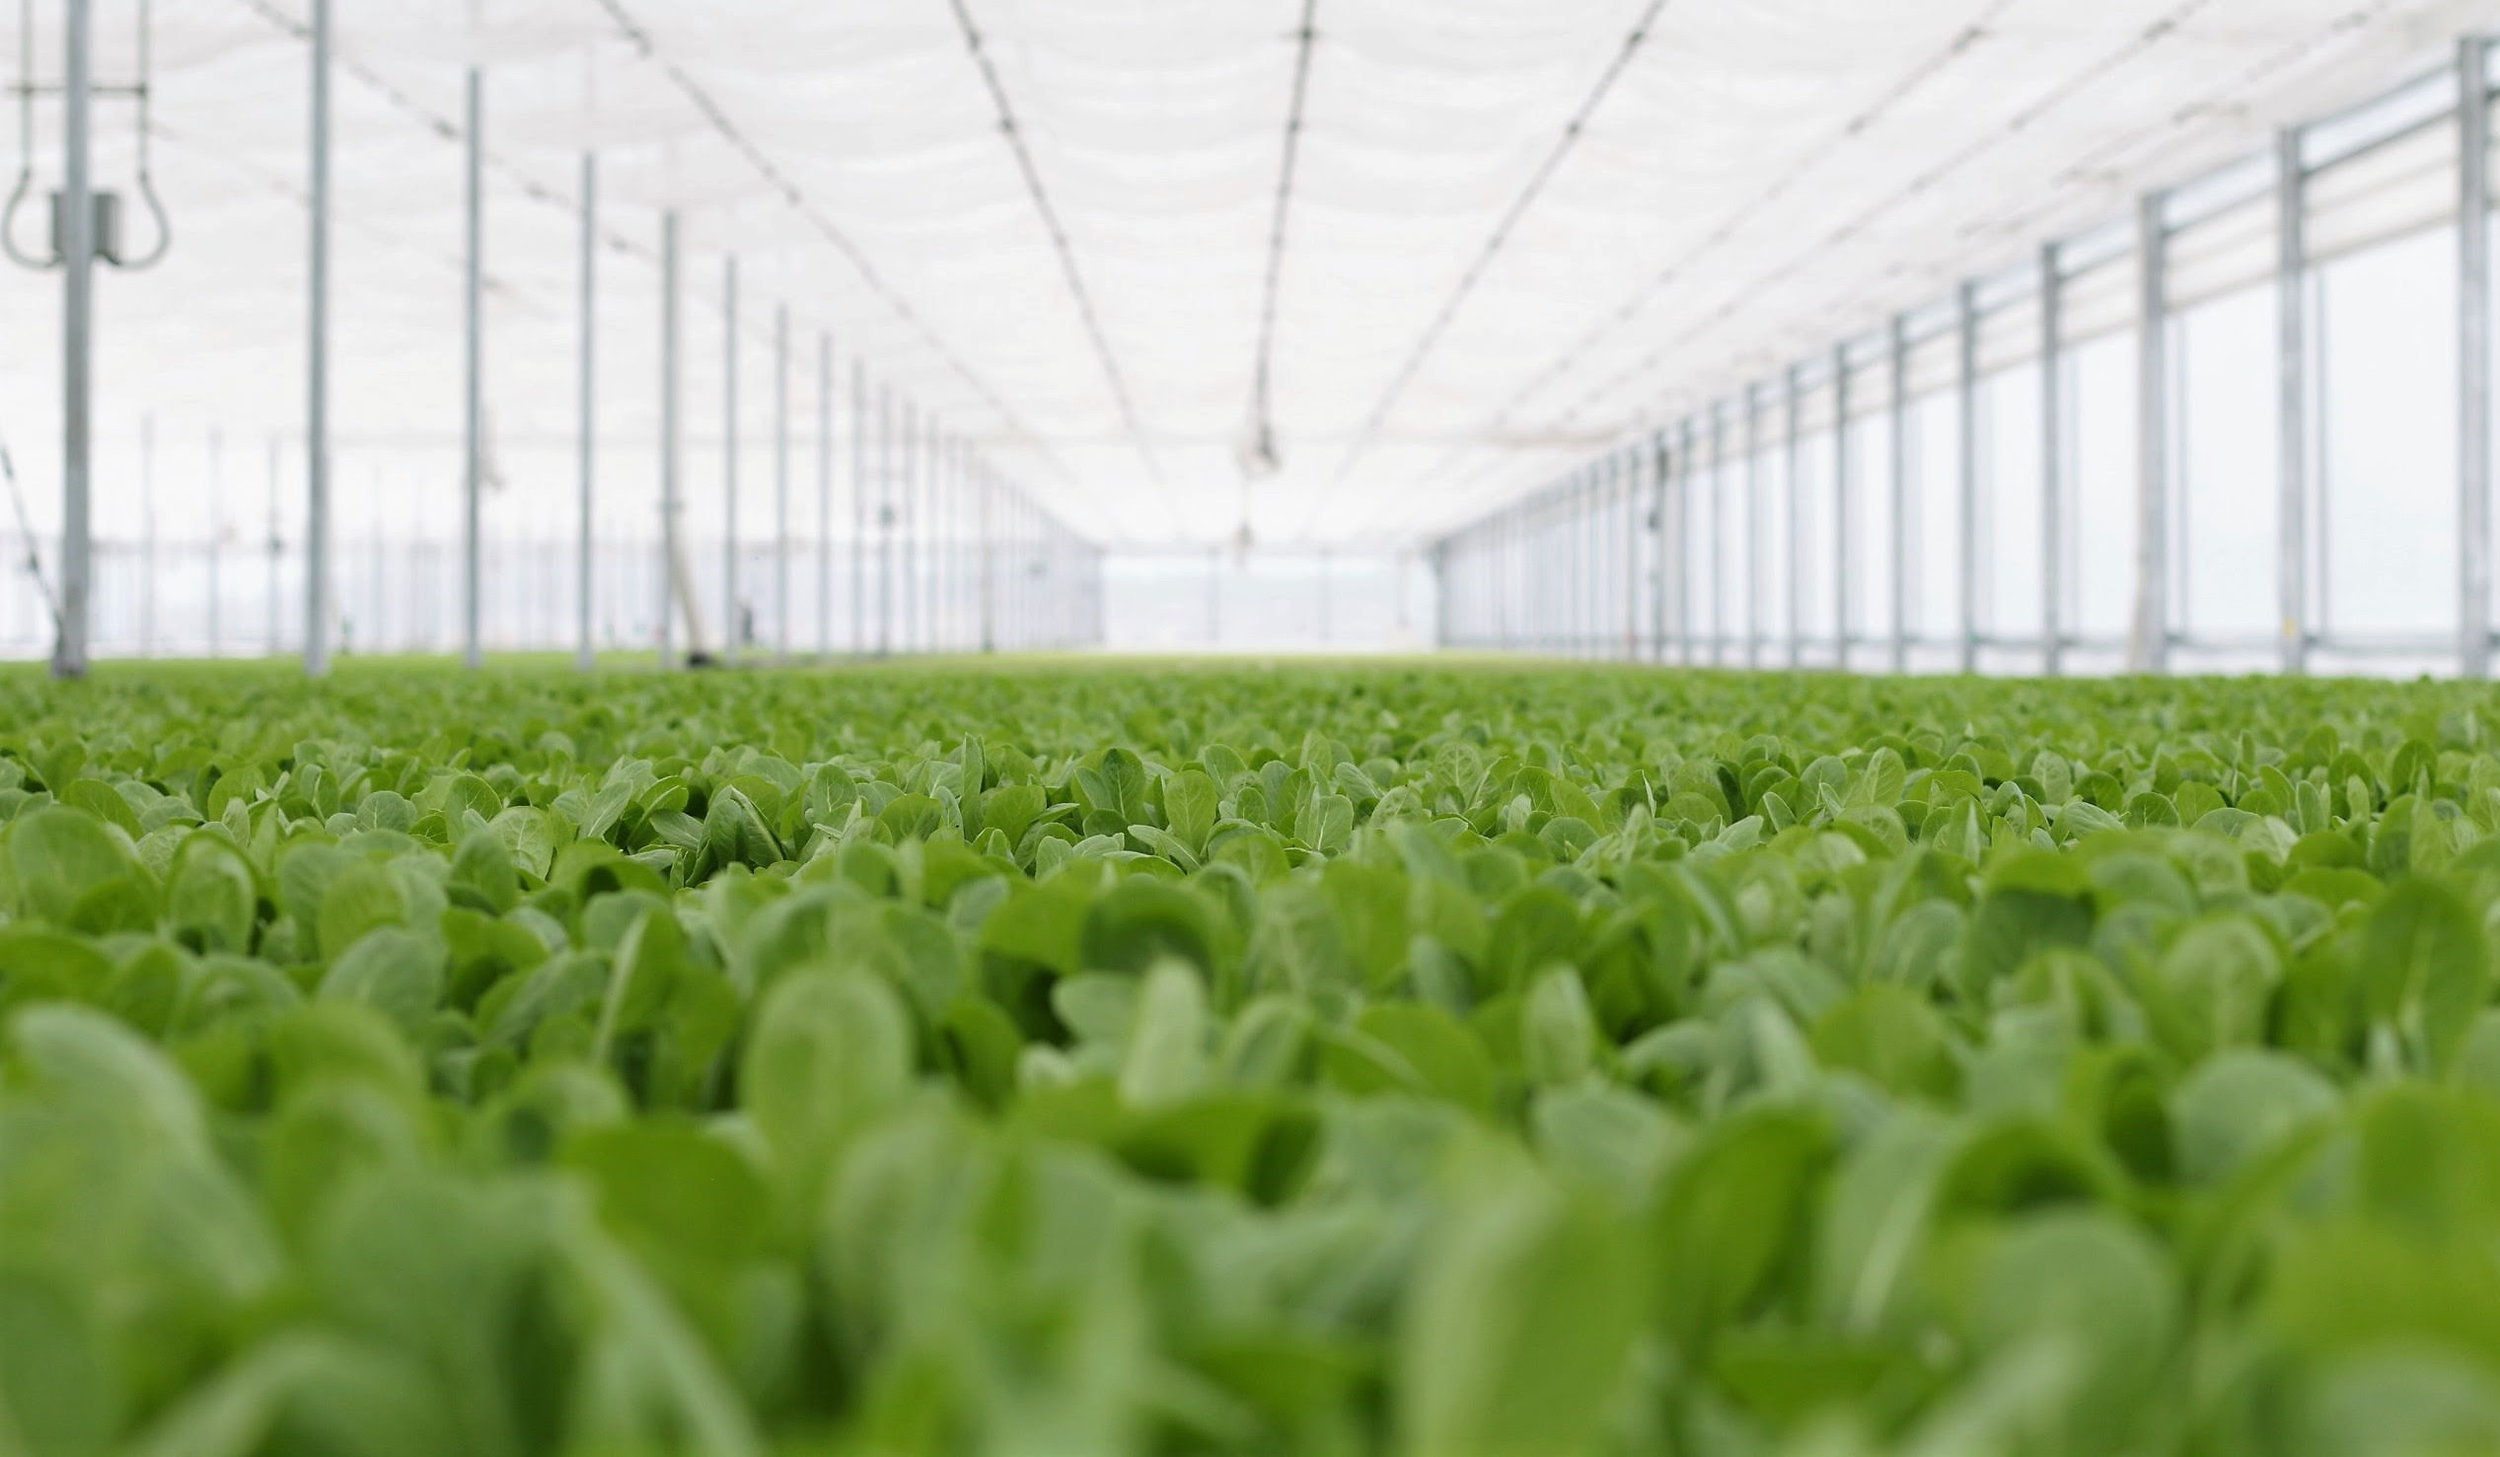 Green Life Farms   has harvested its first crop of baby leafy greens, pictured above, at its flagship hydroponic greenhouse in Lake Worth, an important milestone as the company prepares to begin selling to supermarkets, restaurants, cruise ships and other distributors. Green Life Farms expects to begin growing produce for customers later this summer.